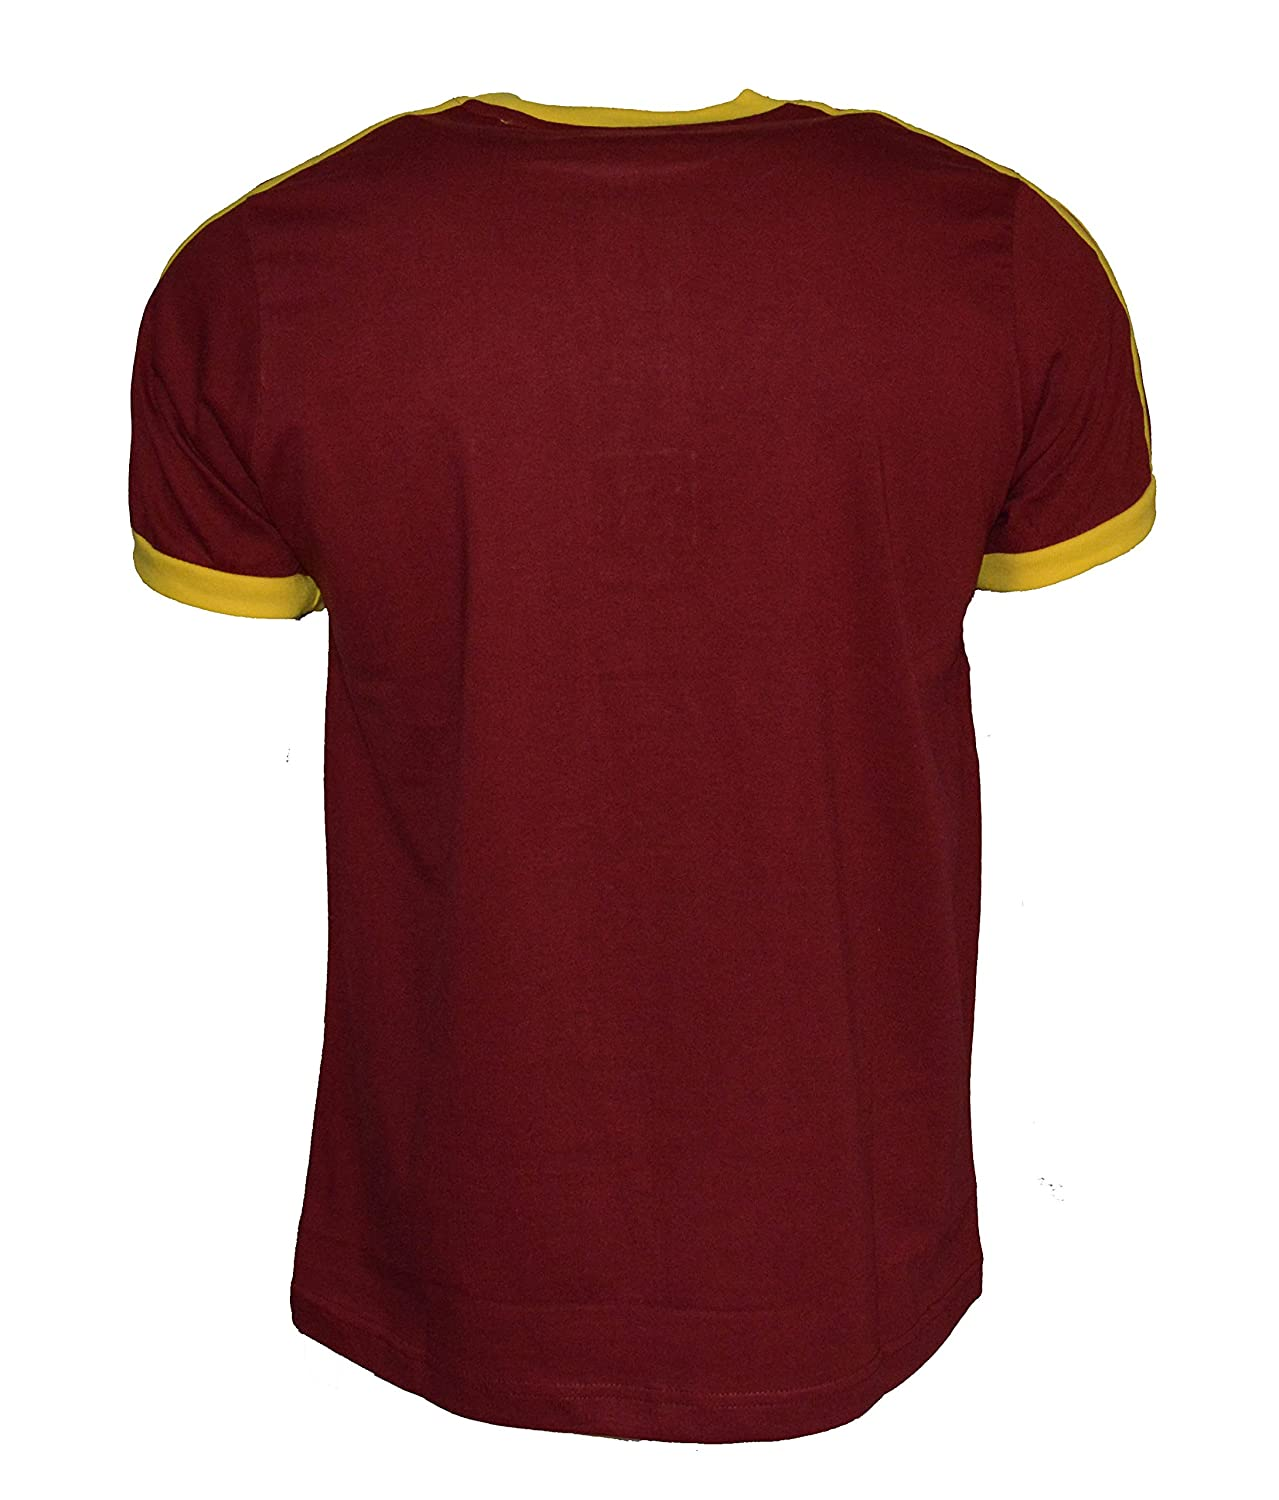 Amazon.com : Venezuela Soccer Team Mens T-shirt 100 % Cotton Soccer Jersey Venezuela Flag (S) : Sports & Outdoors